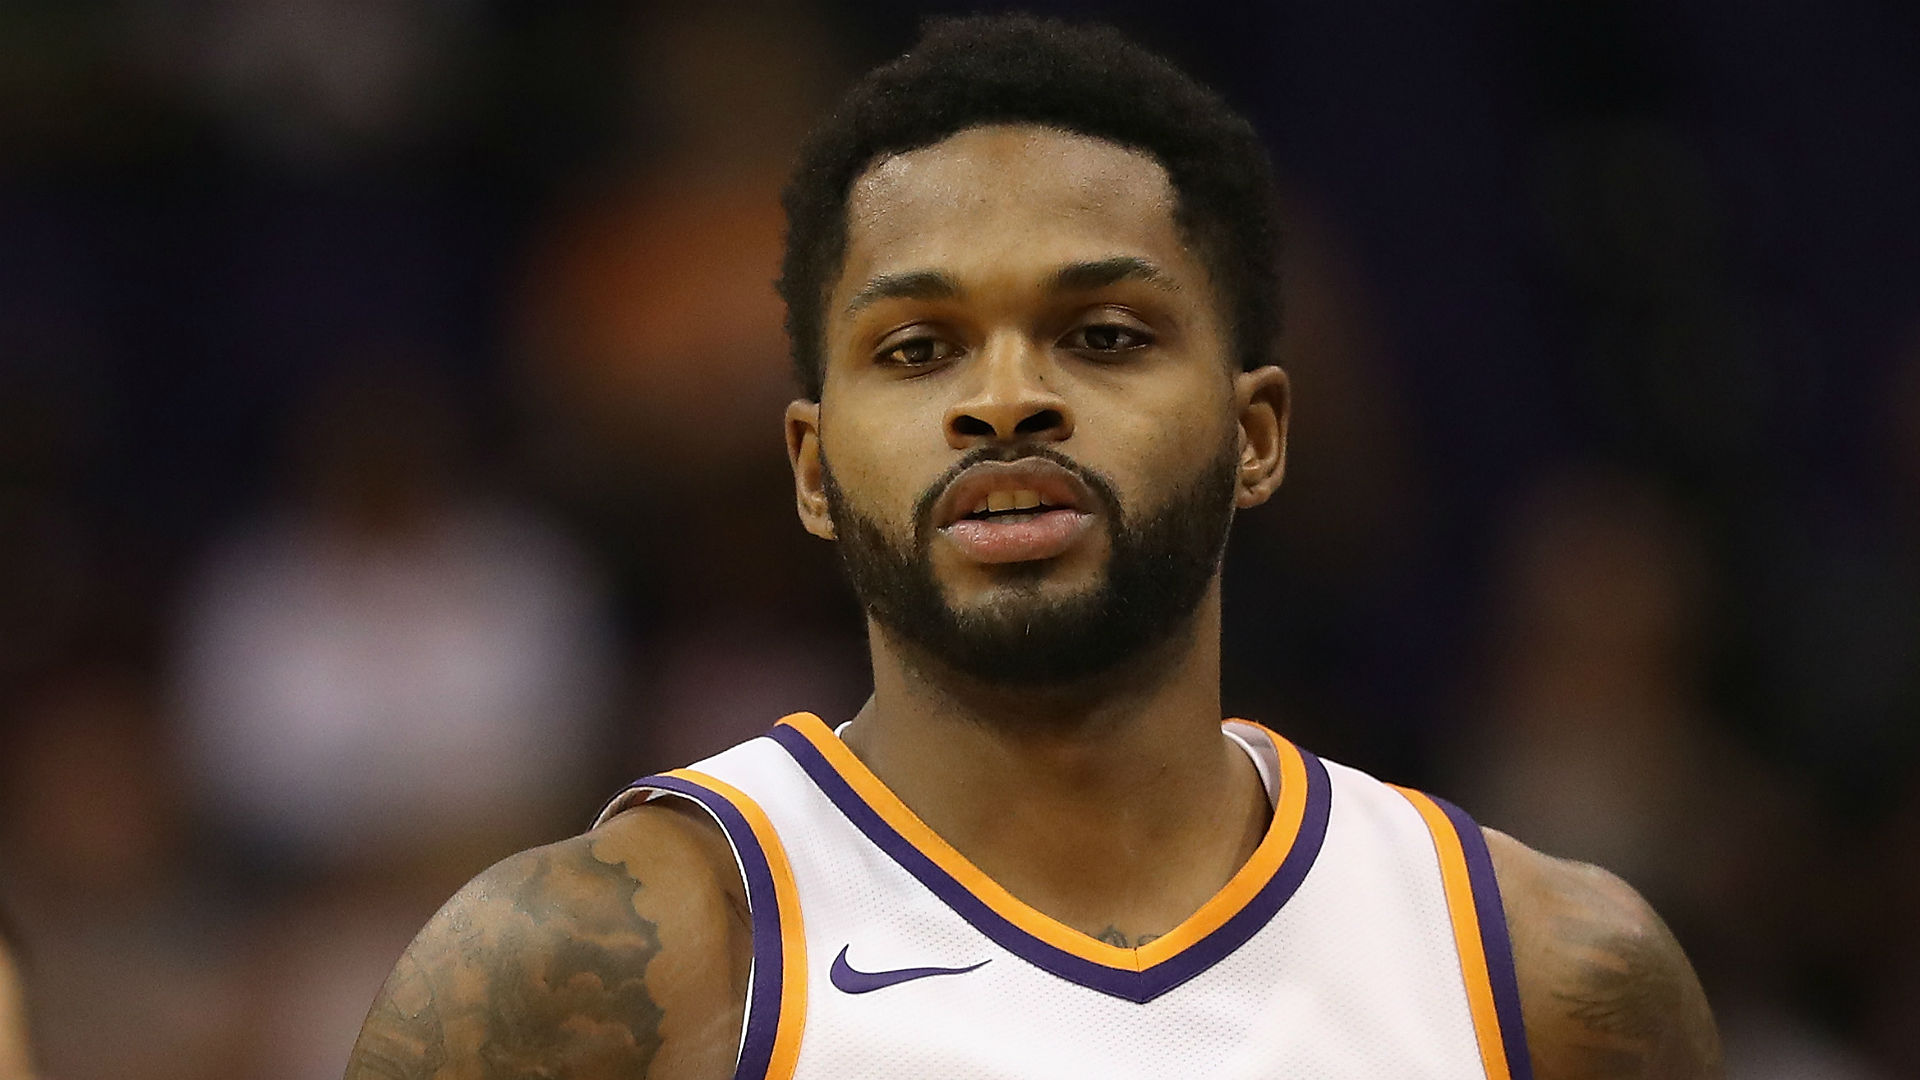 Troy Daniels says he was recruited to Lakers by Anthony Davis